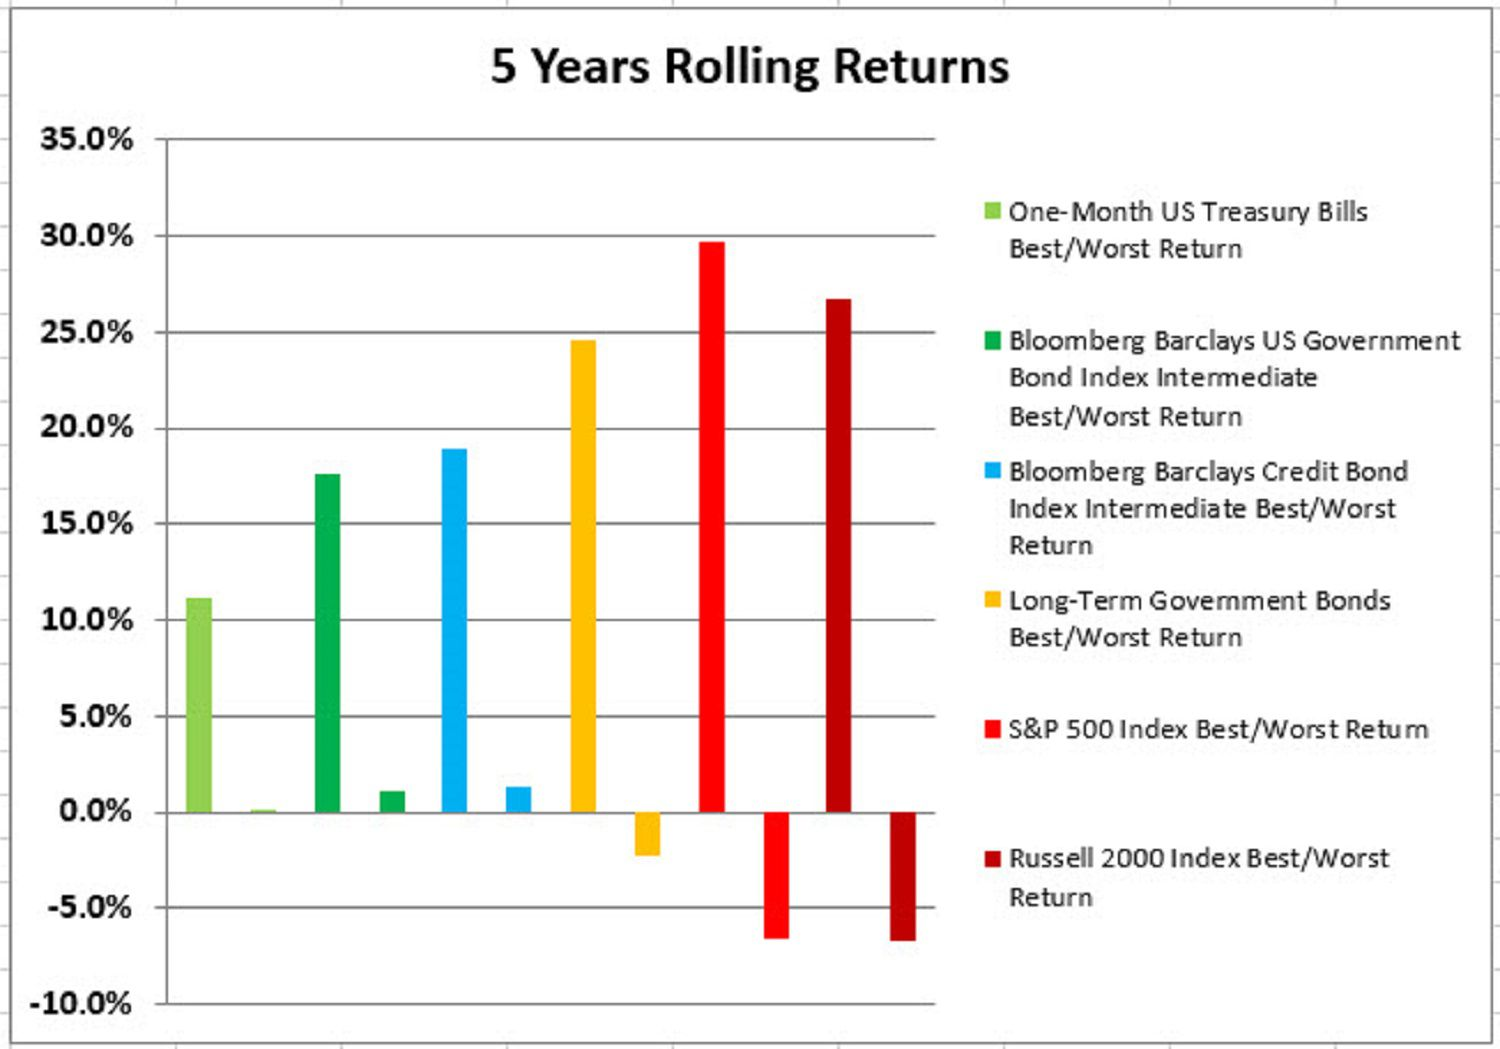 5 Years Rolling Returns